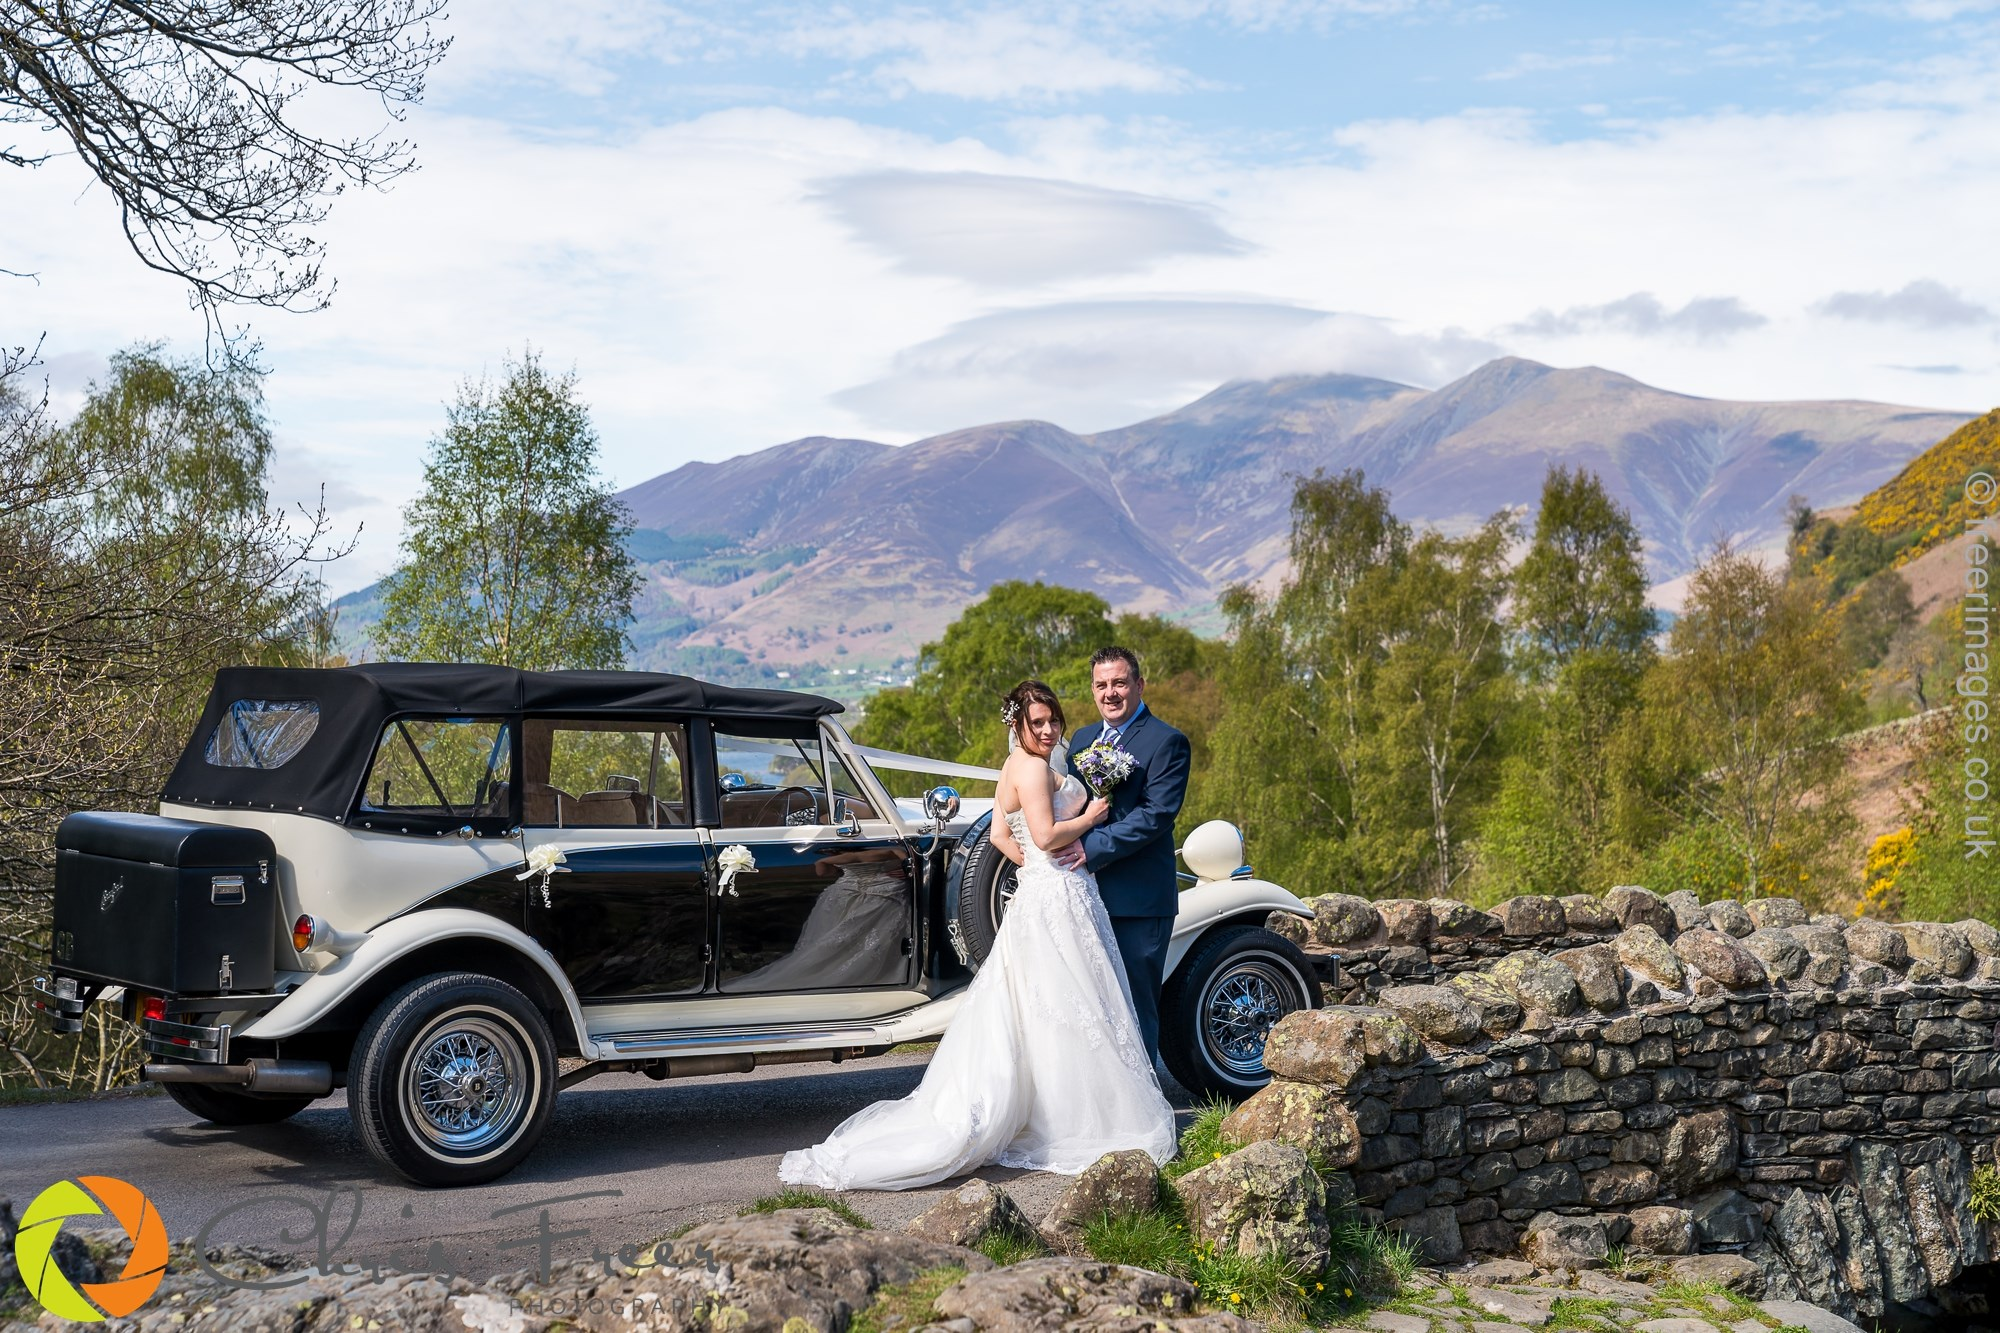 4 door long bodied Black & Ivory Beauford (seats 3 passengers) Wedding Car Hire